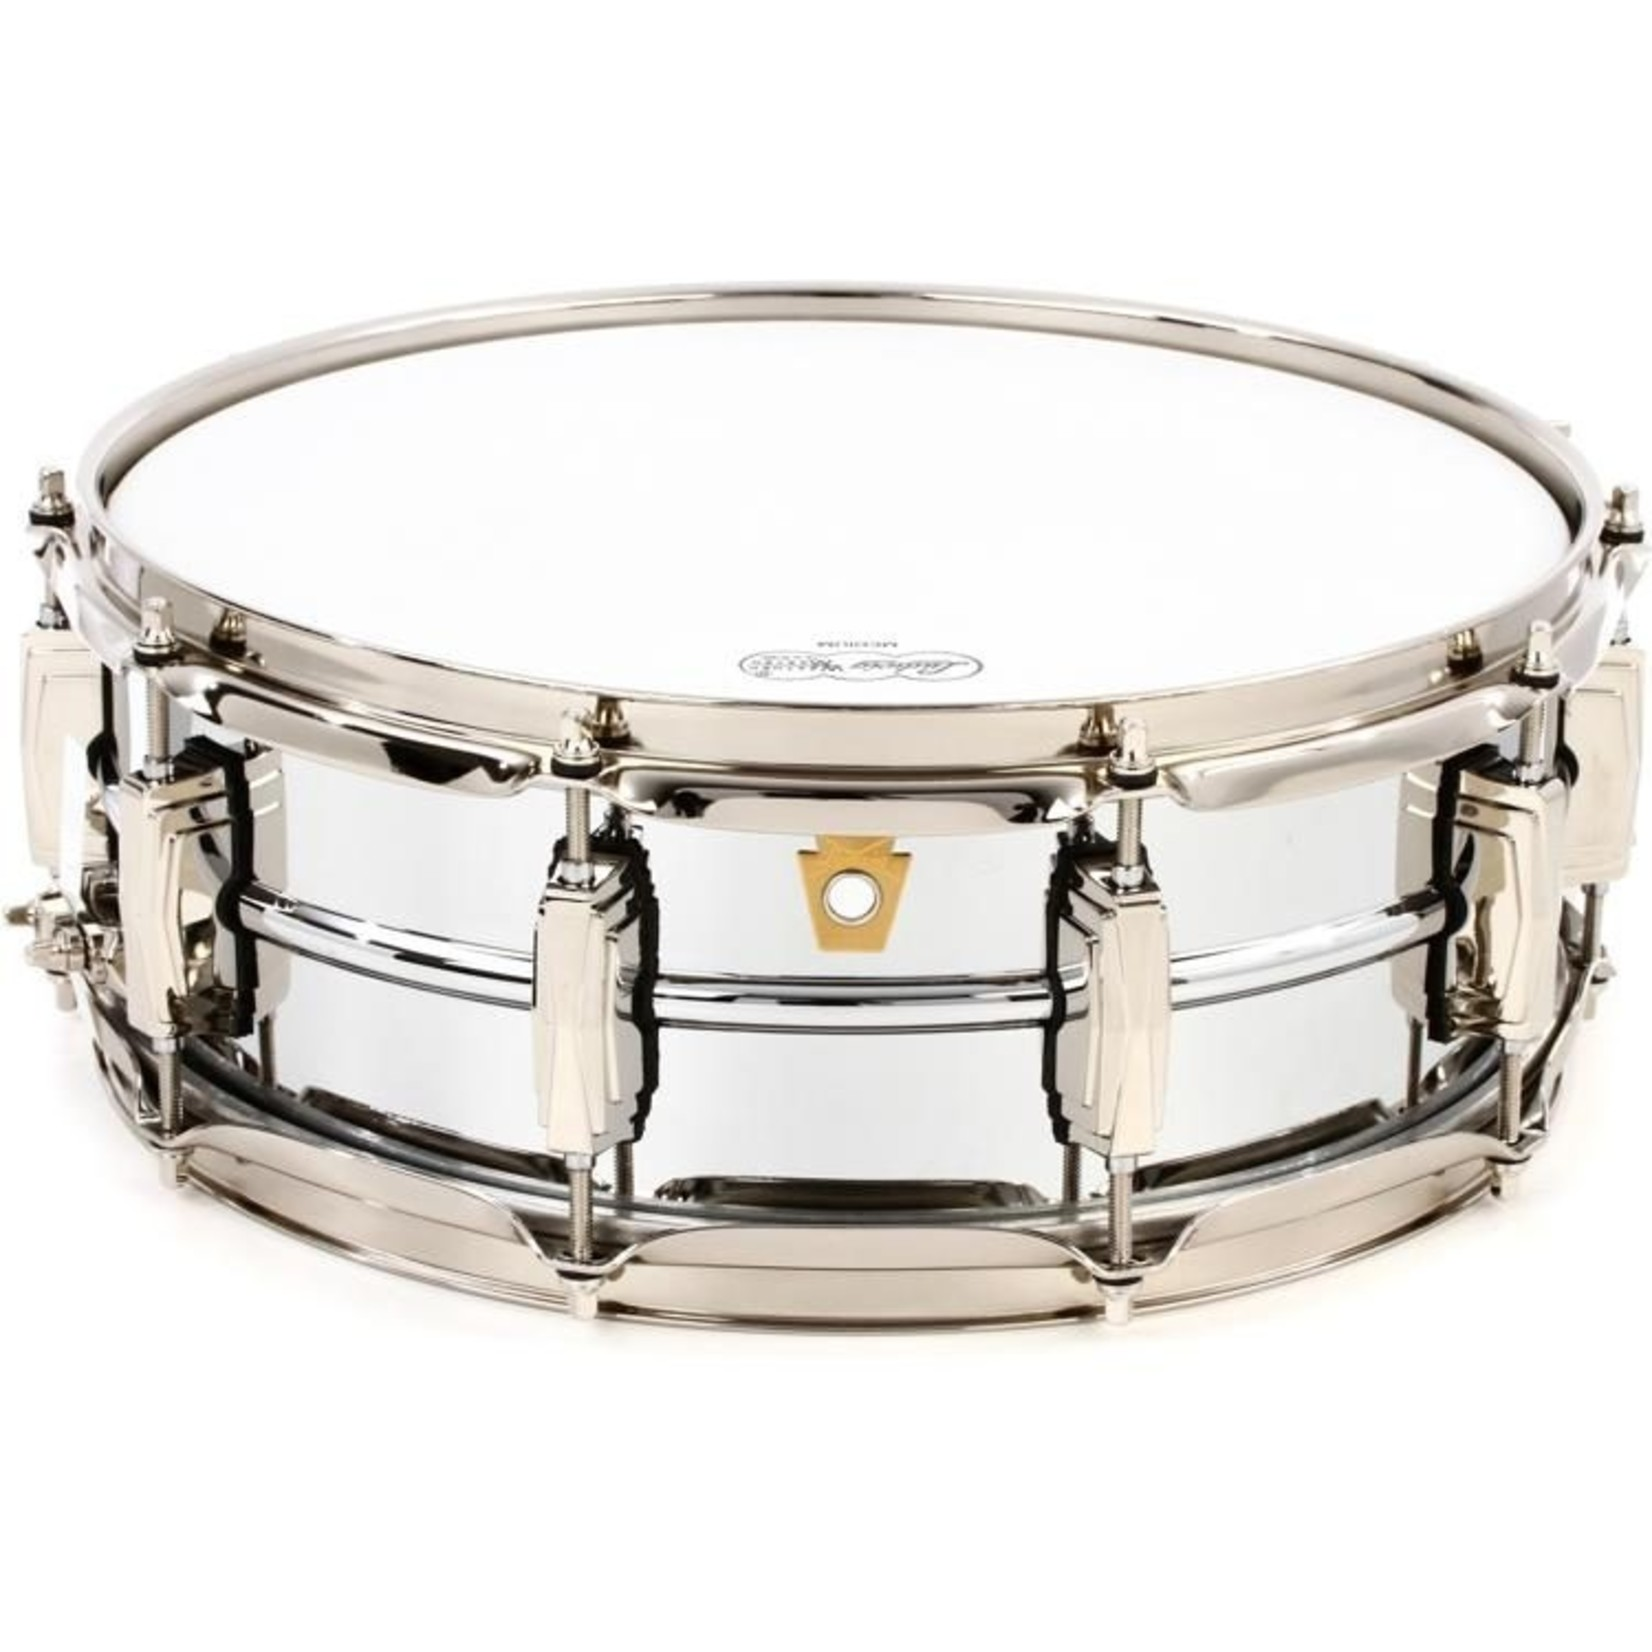 Ludwig Ludwig 5X14 Supraphonic Chrome over Brass Snare Drum / Imperial Lugs / Nickel Hardware